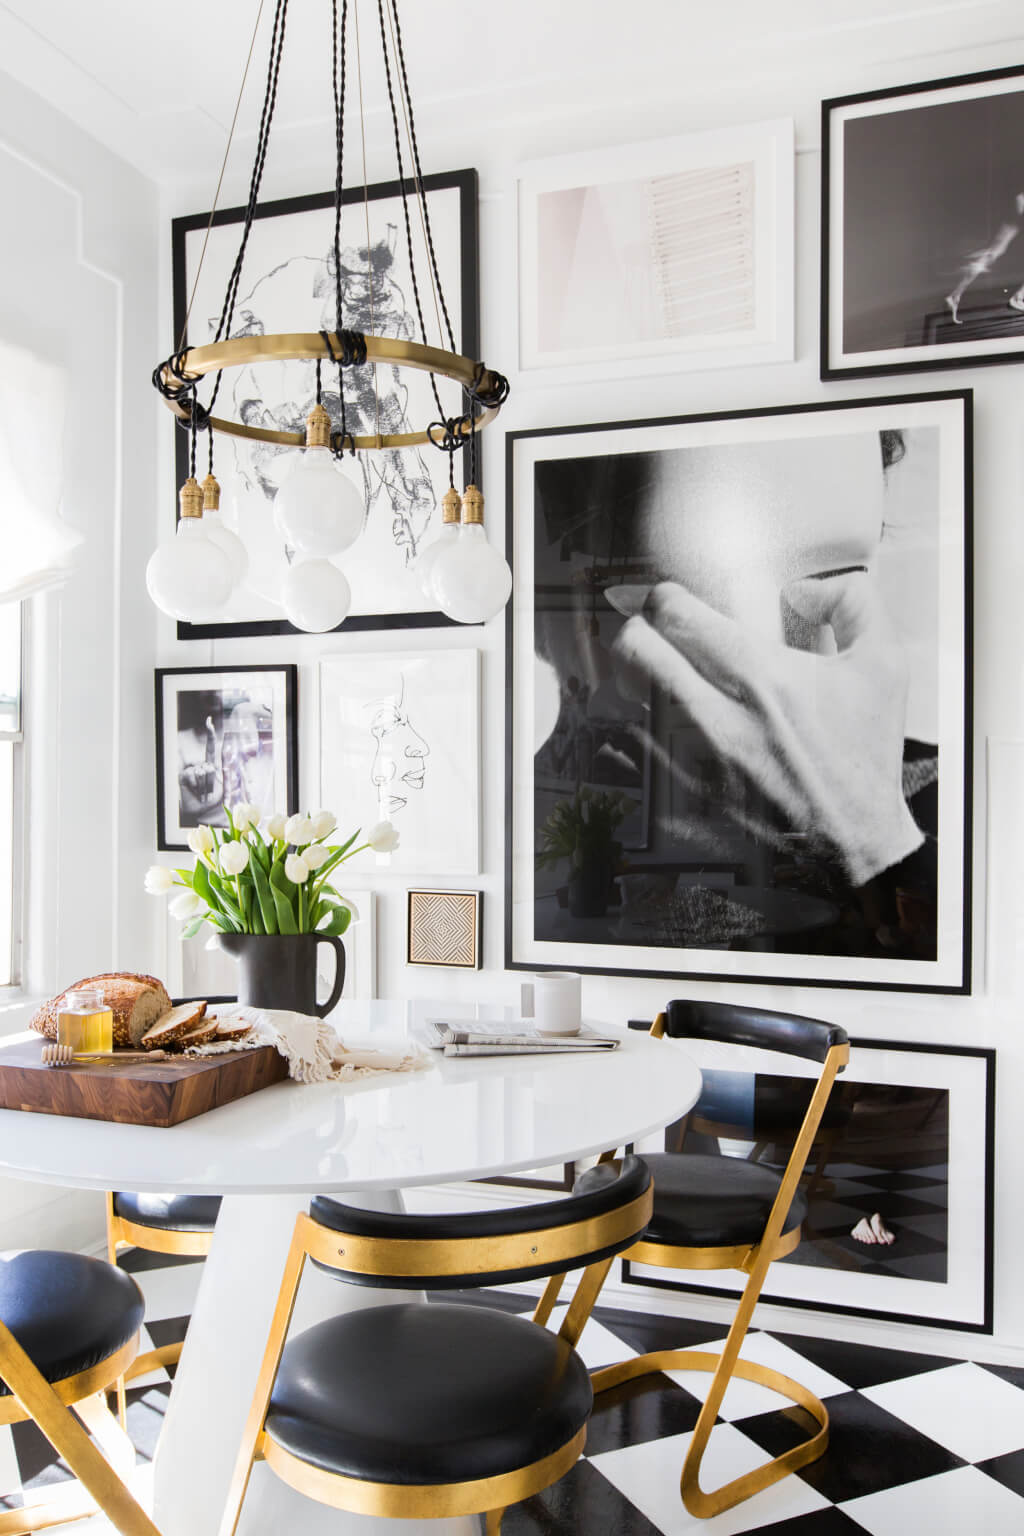 Brady-Tolbert_Emily-Henderson_Black-and-White-Kitchen_Vintage_Apartment-Refresh_Wood_Brass_Checkered-Floor_Copper-Pots_Eclectic_Glam_Modern_Traditional_5-1024x1536